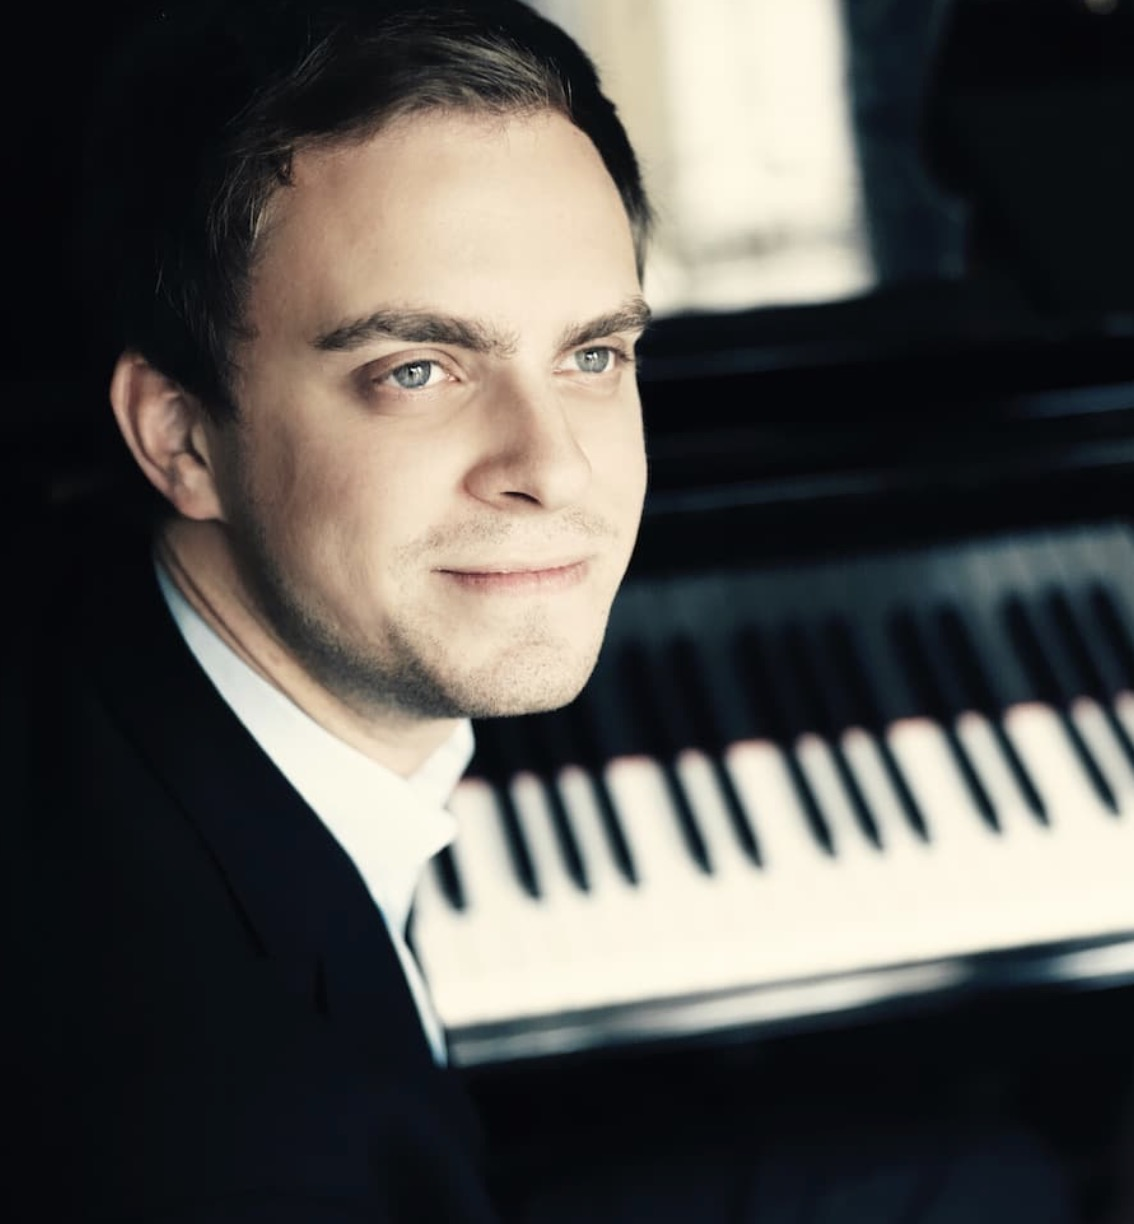 Pianist Sam Armstrong solo